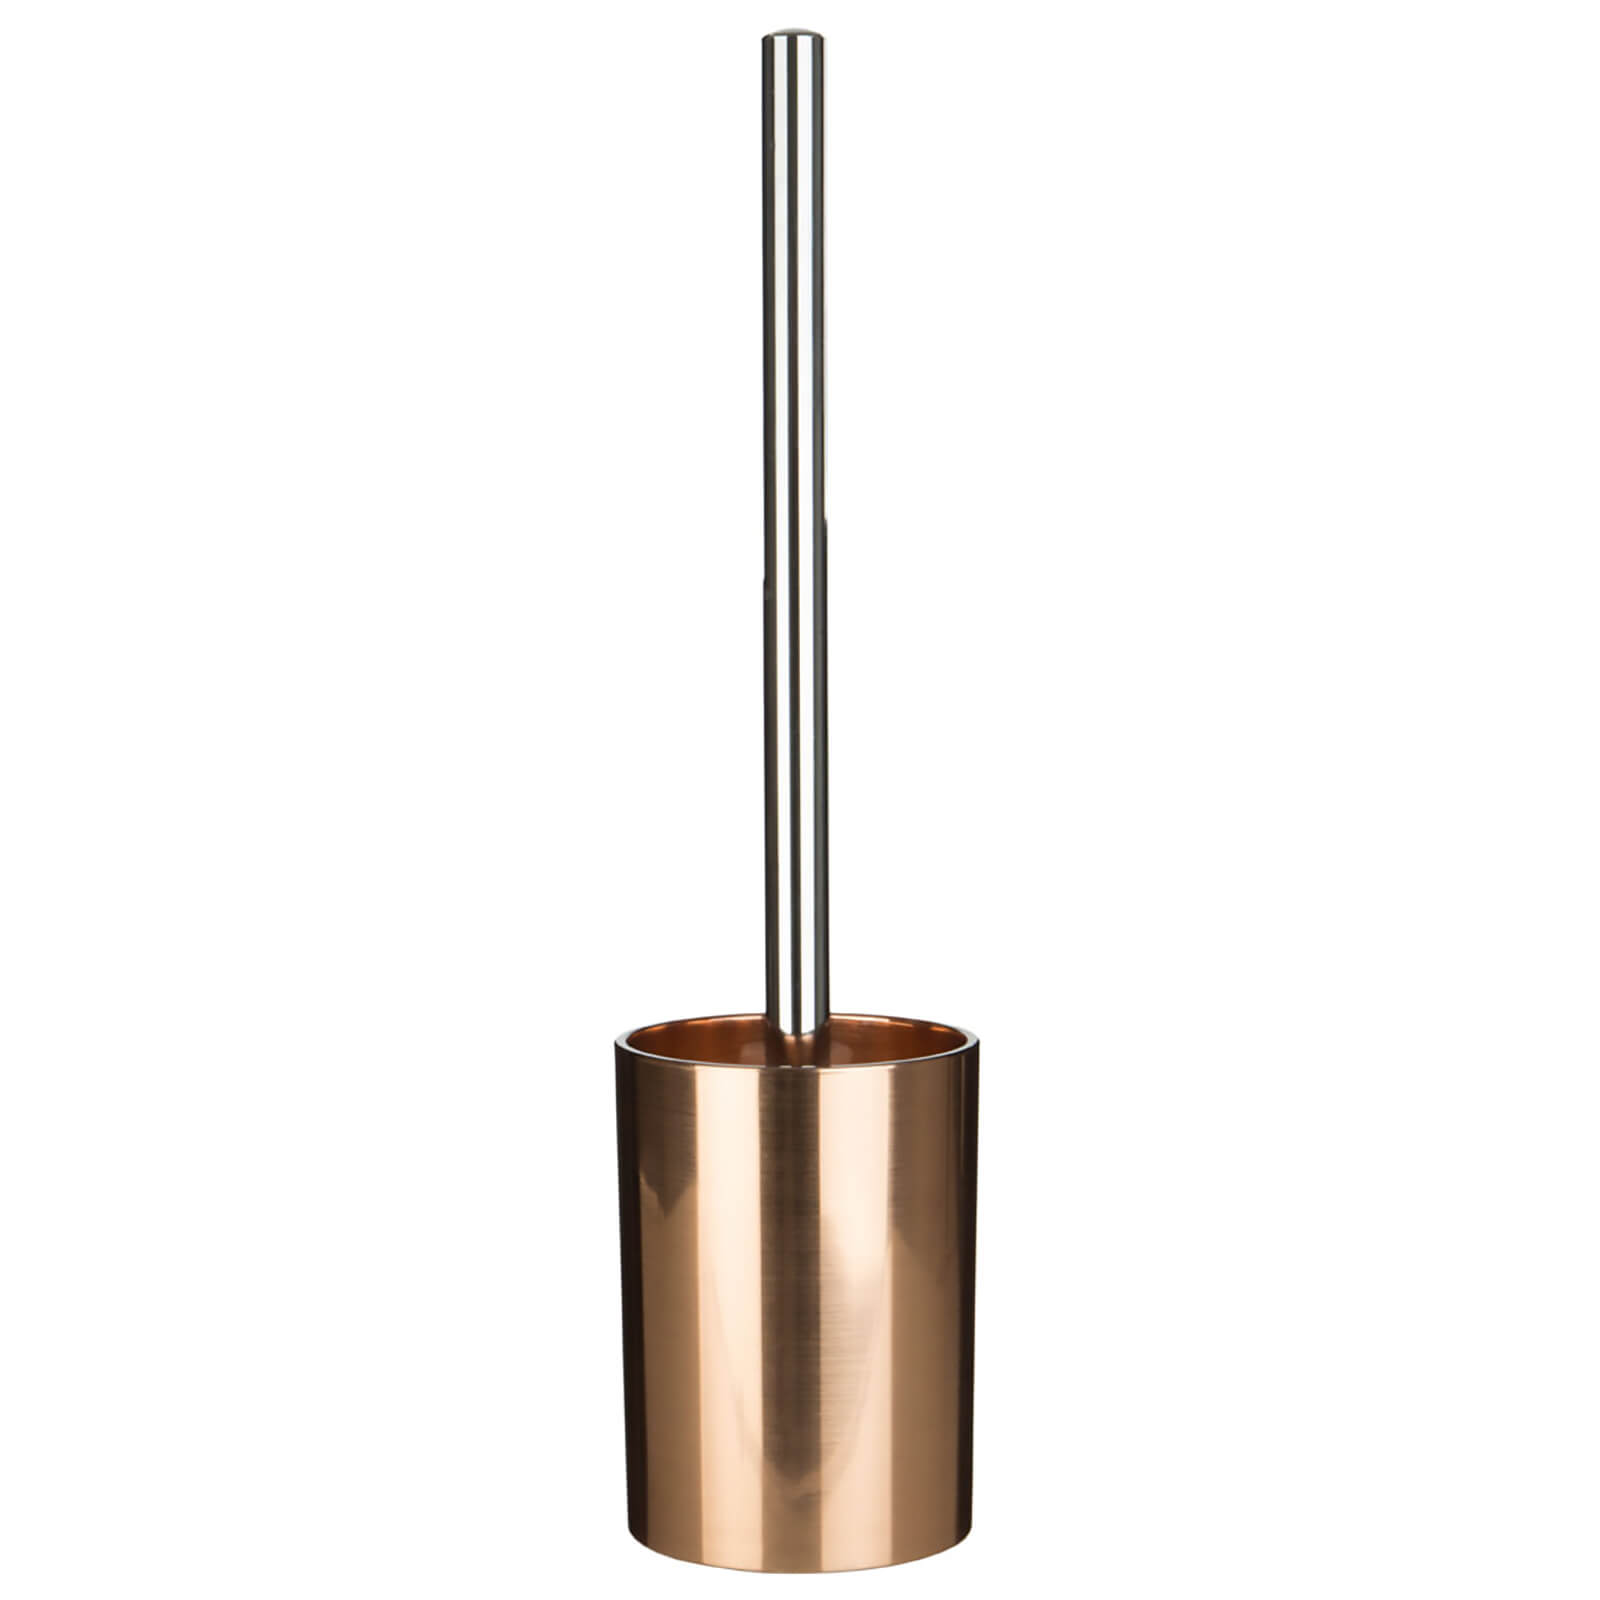 Fifty Five South Shine Toilet Brush and Holder - Rose Gold